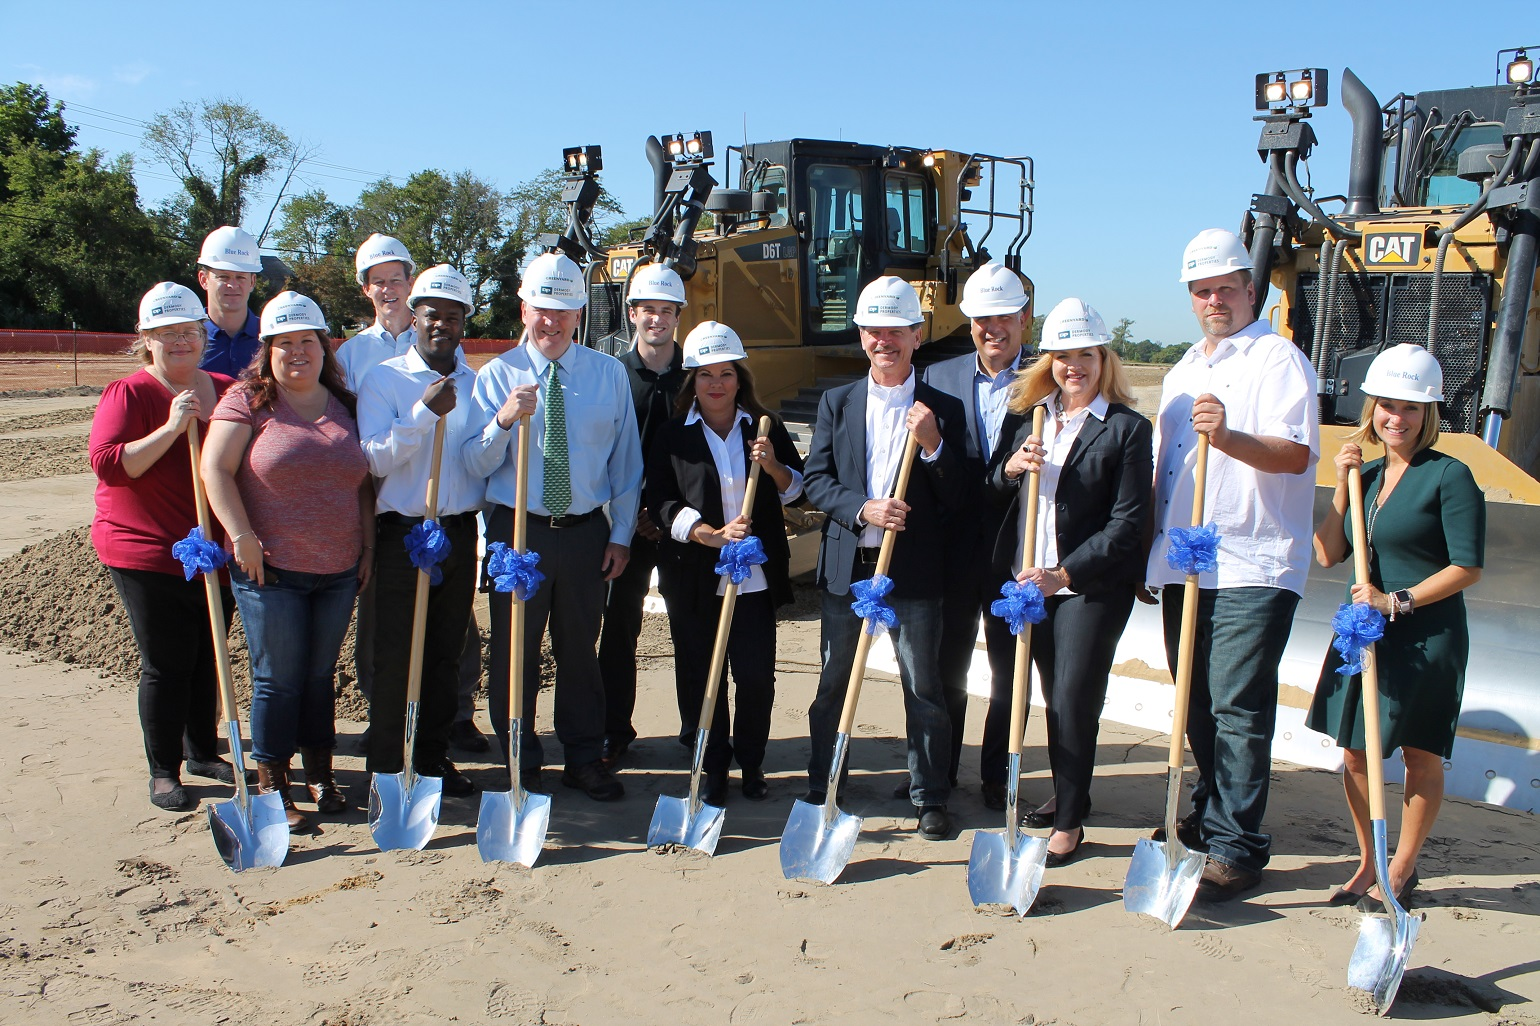 Representatives from Blue Rock, Dermody Properties and Greenyard Logistics USA celebrate the groundbreaking of a 152,200 SF packing and cold storage facility in southern New Jersey.